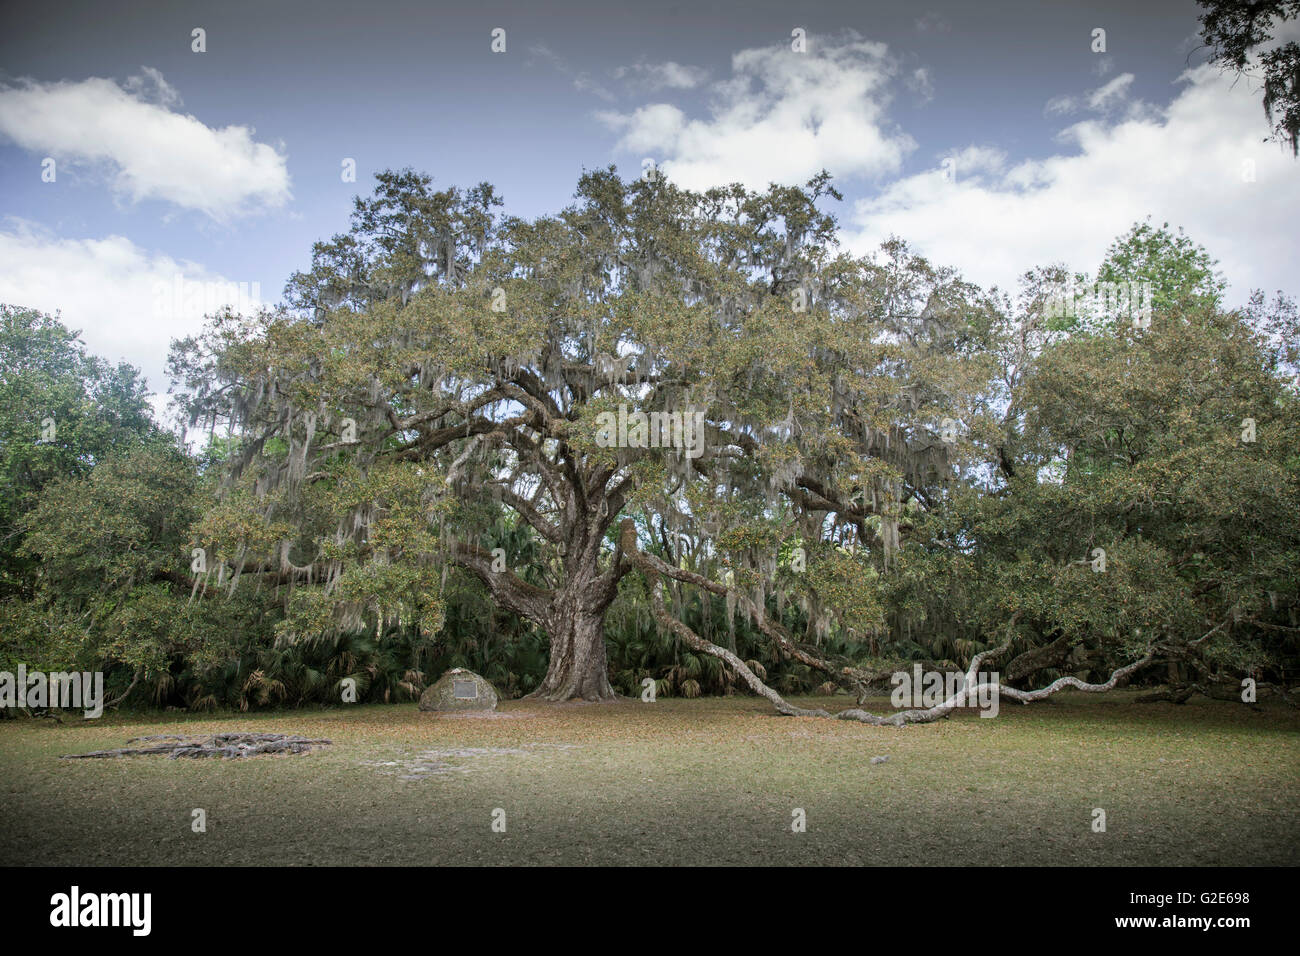 Very Old Oak Tree - Stock Image